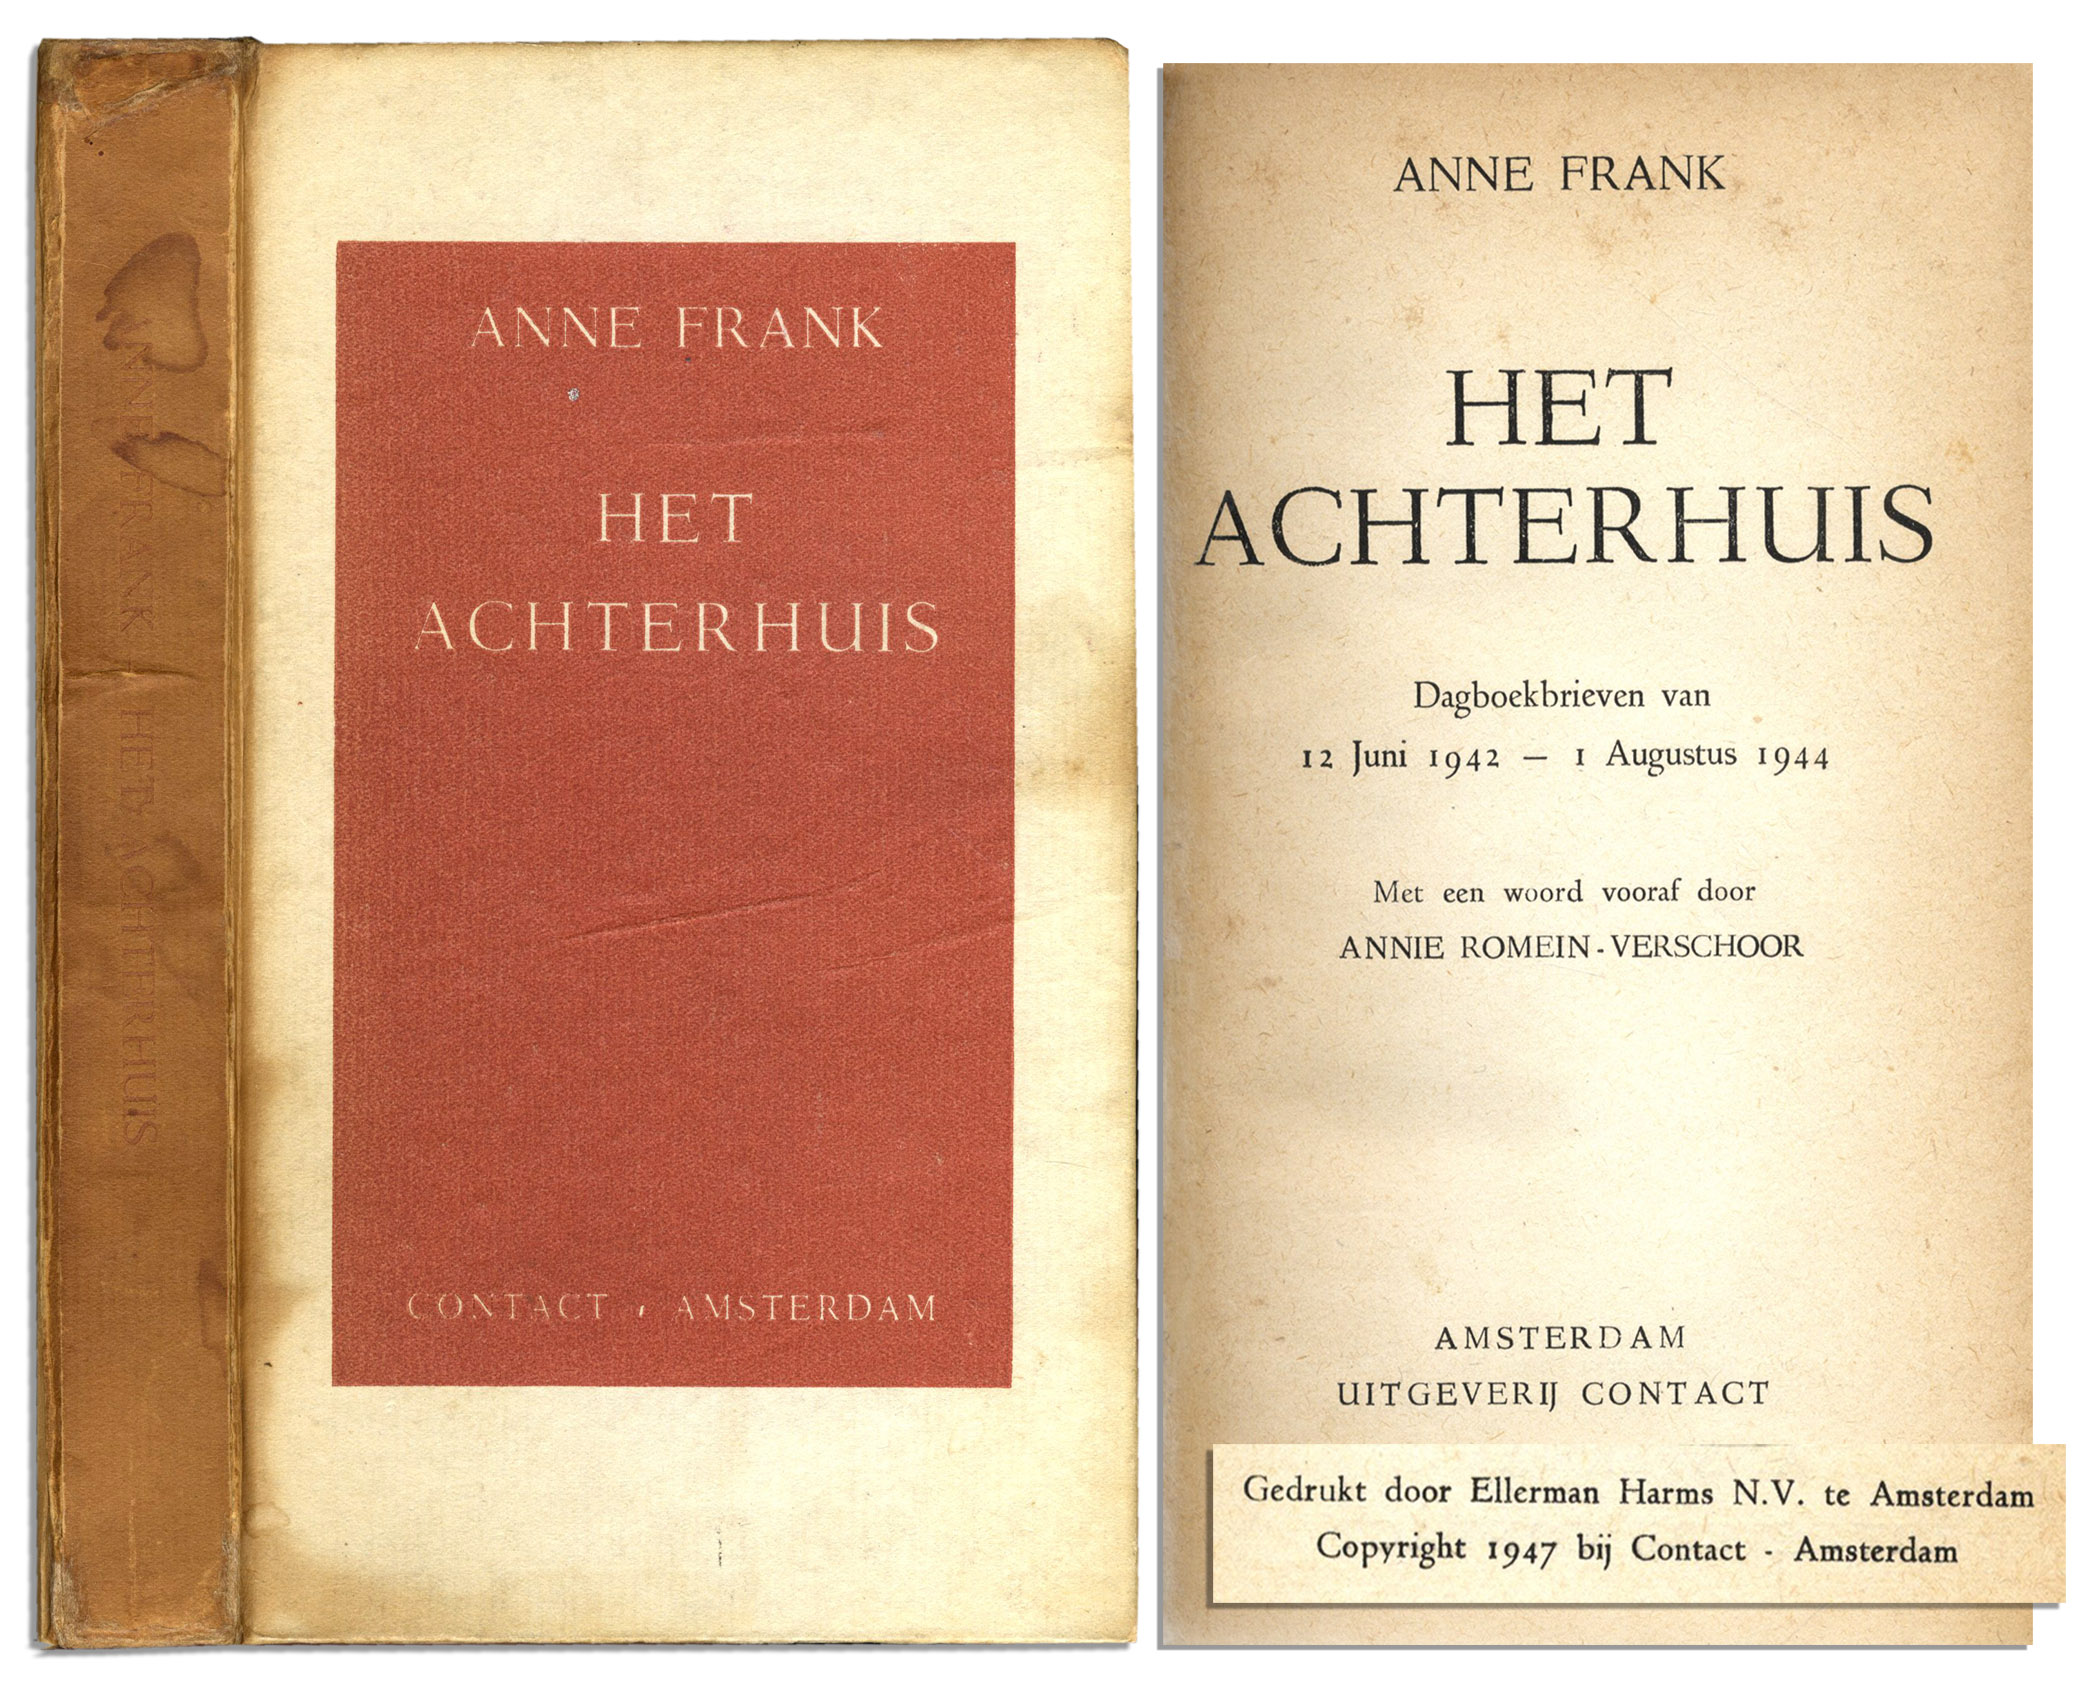 Anne Frank 1st edition book